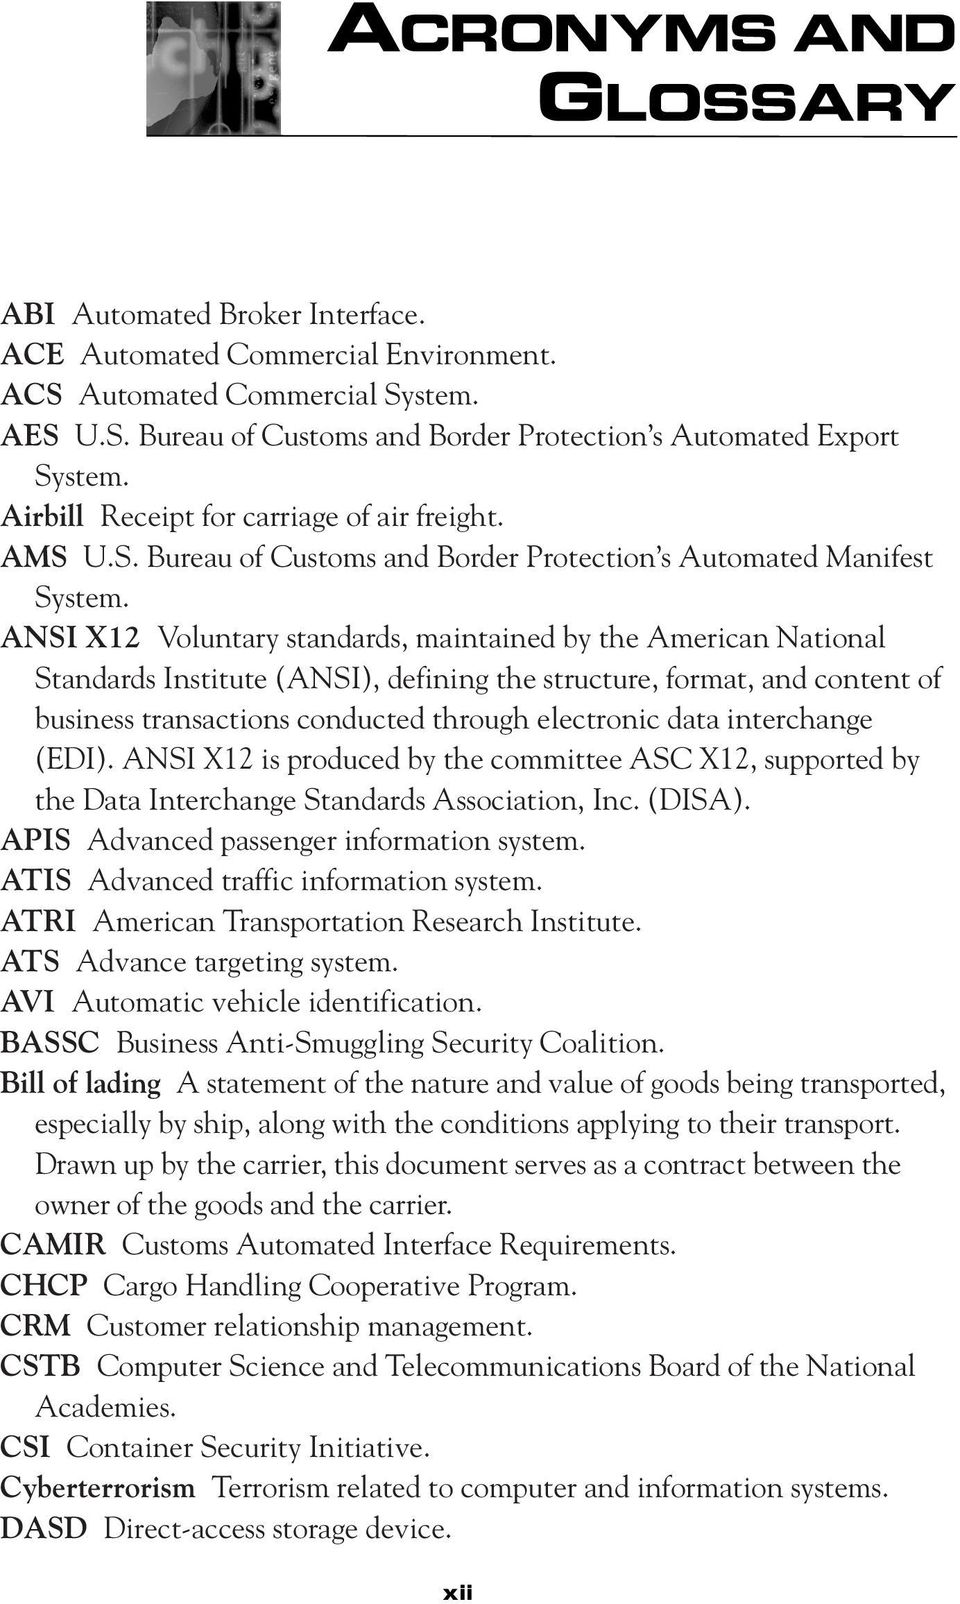 ANSI X12 Voluntary standards, maintained by the American National Standards Institute (ANSI), defining the structure, format, and content of business transactions conducted through electronic data